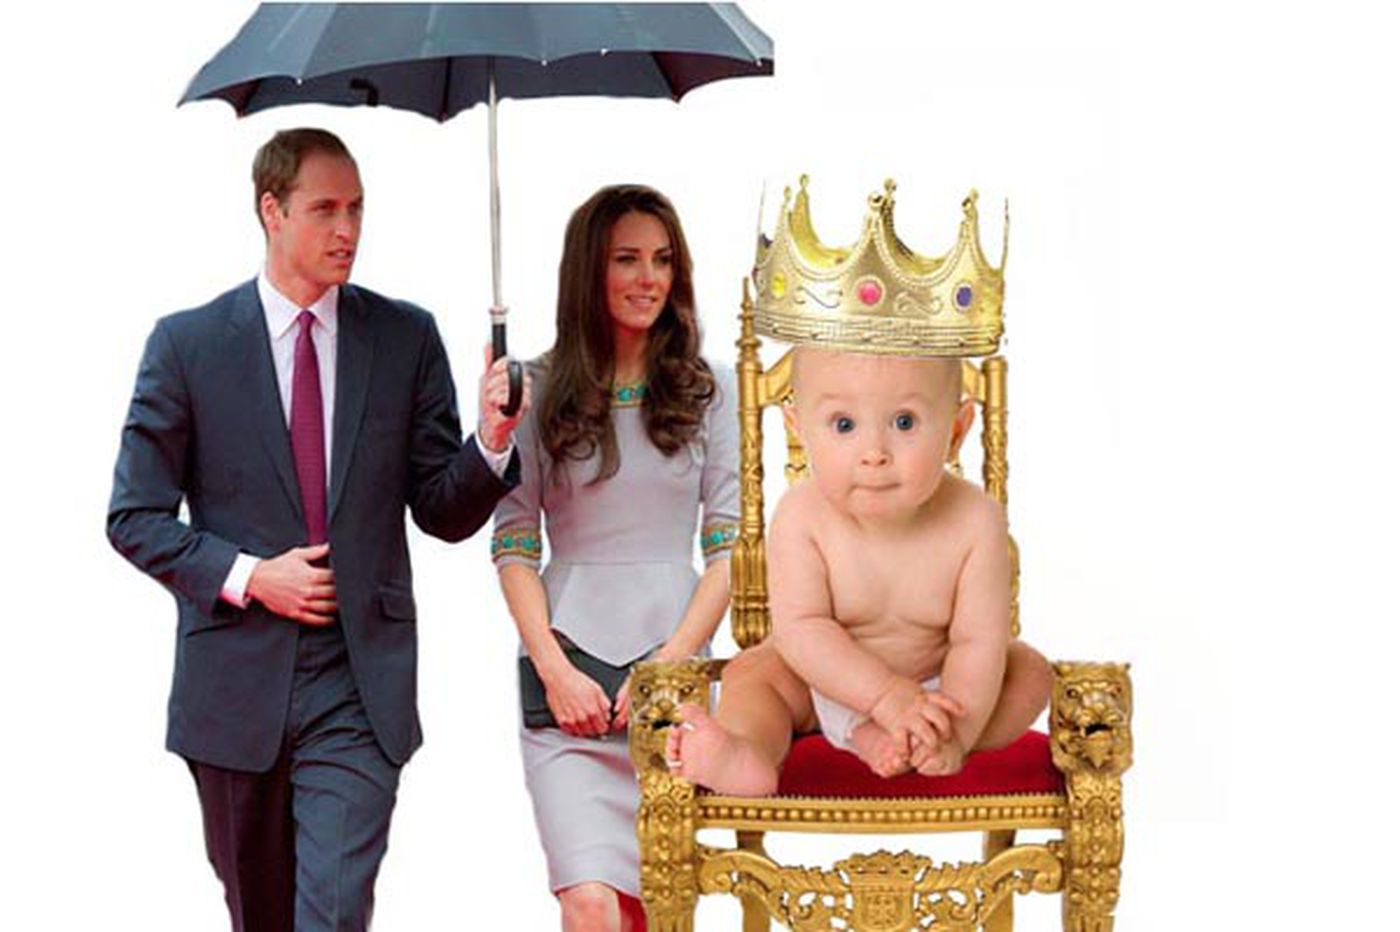 Tattle: Kate's prego - and it's a real a royal flush